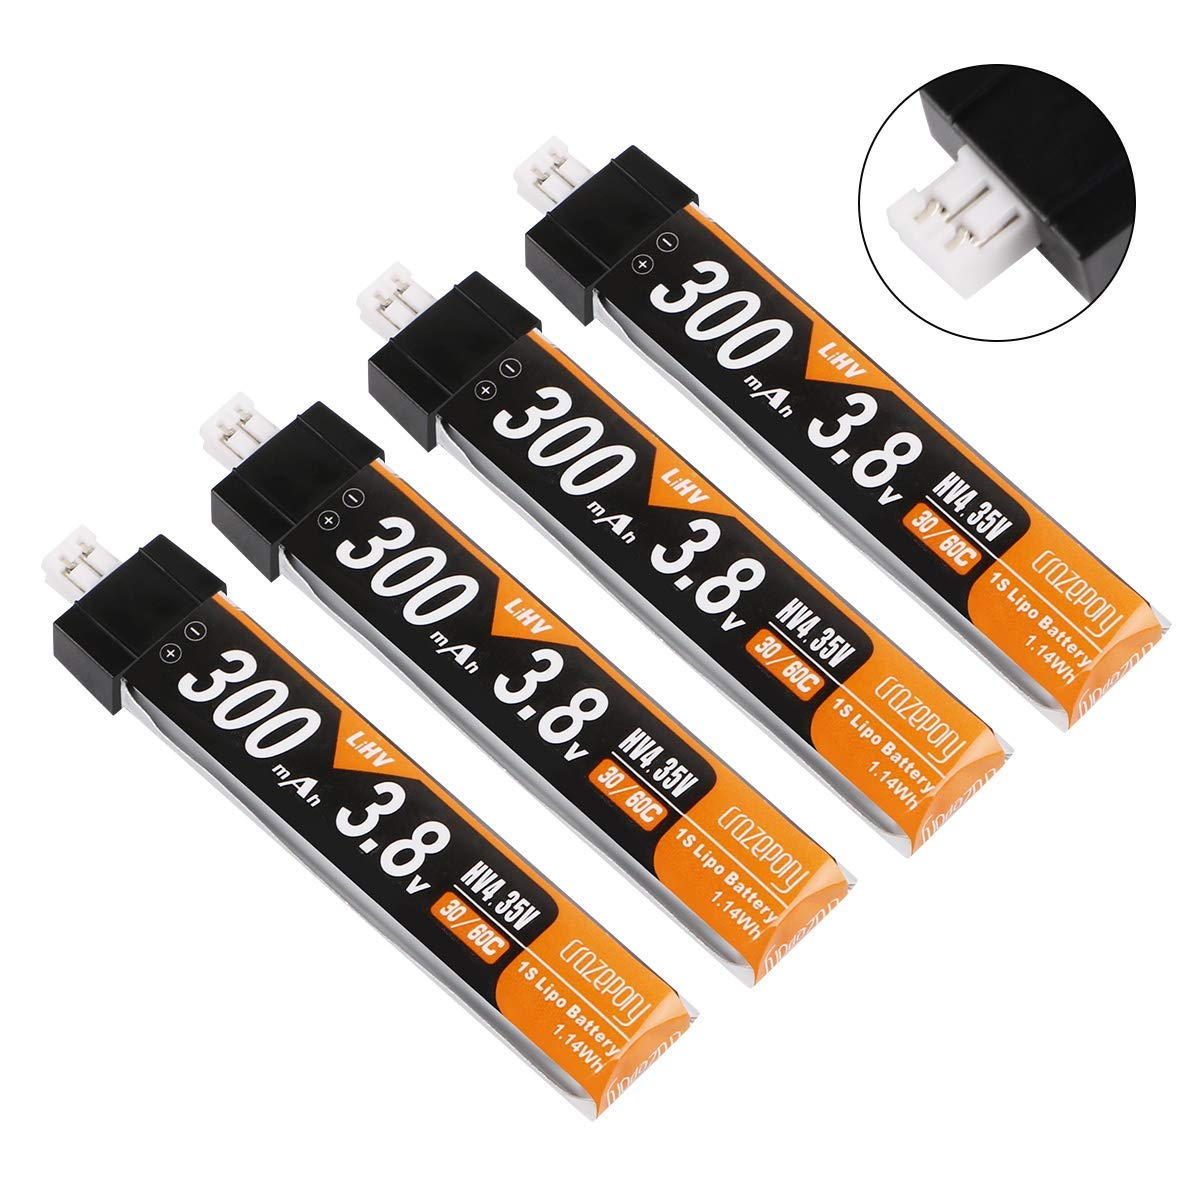 4pcs 300mAh HV 1S Lipo Battery 30C 3.8V for Tiny Whoop JST-PH 2.0 Powerwhoop Connector